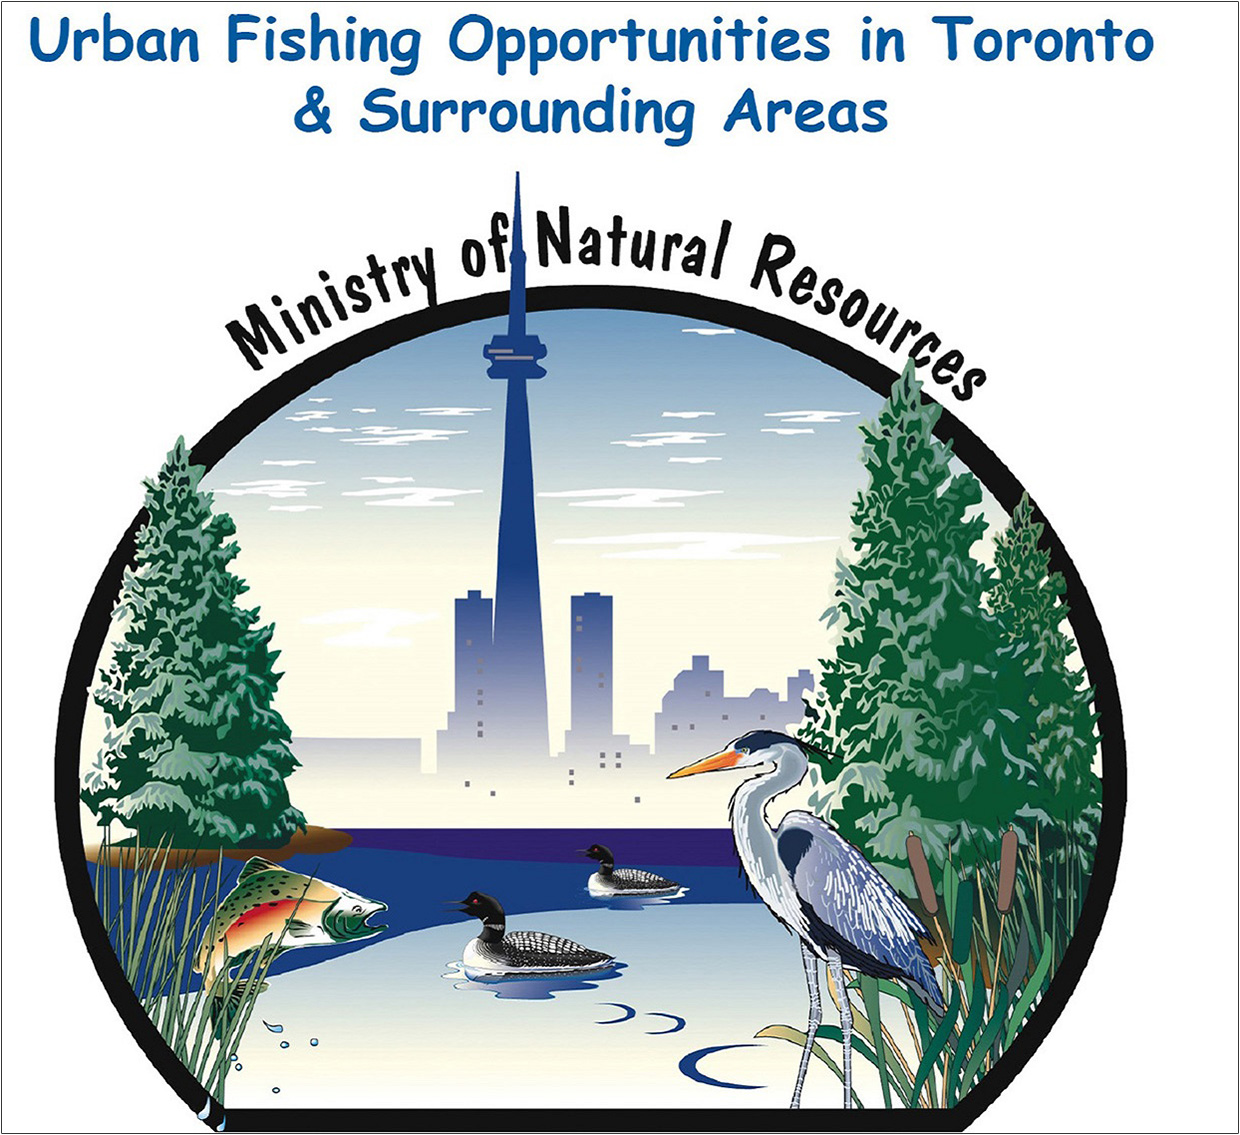 cover of Urban Fishing Opportunities brochure